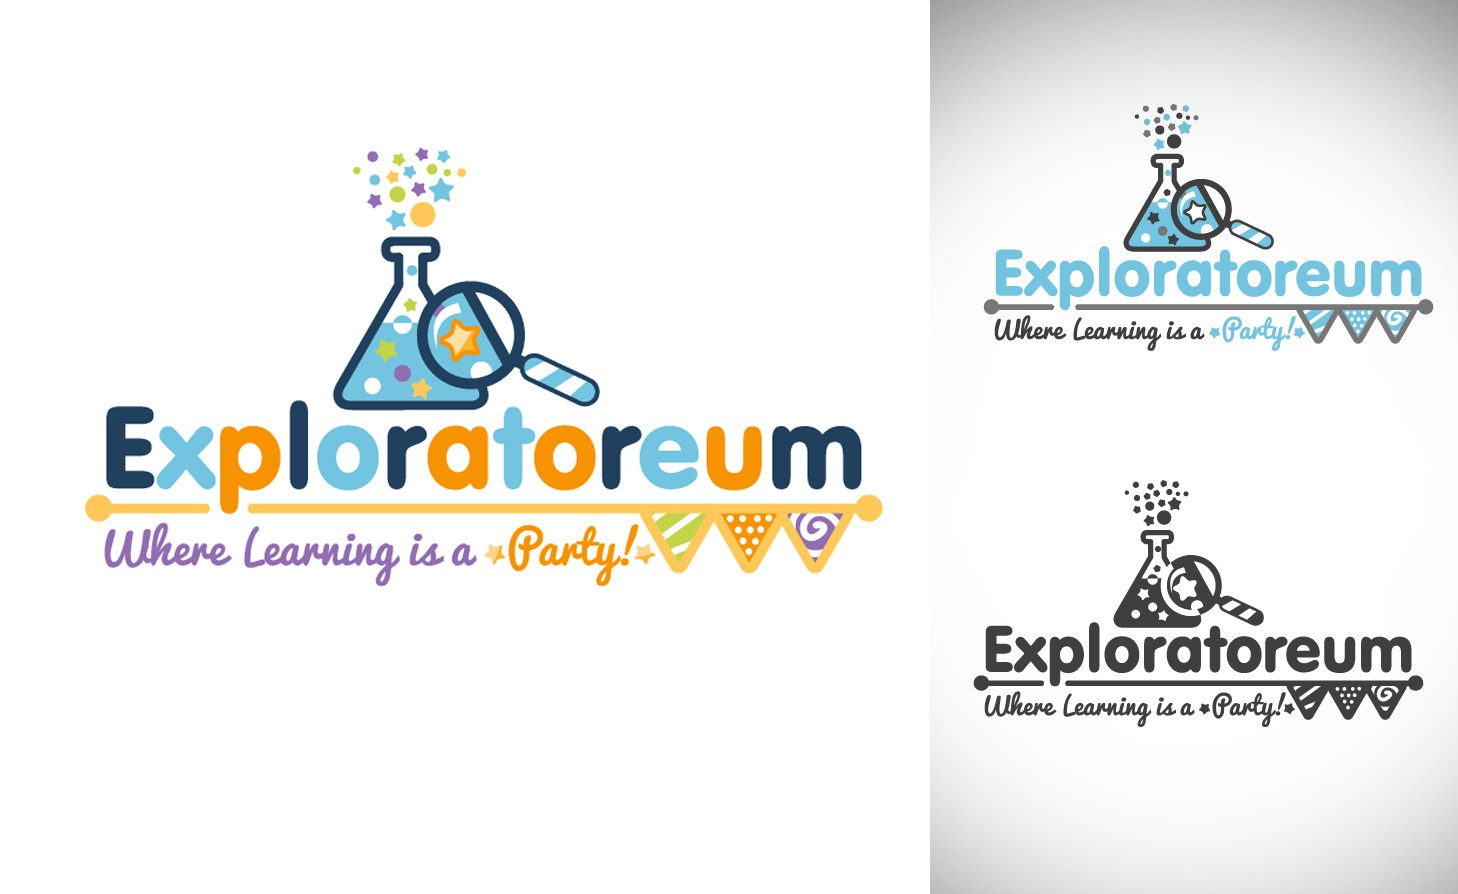 New logo wanted for Exploratoreum